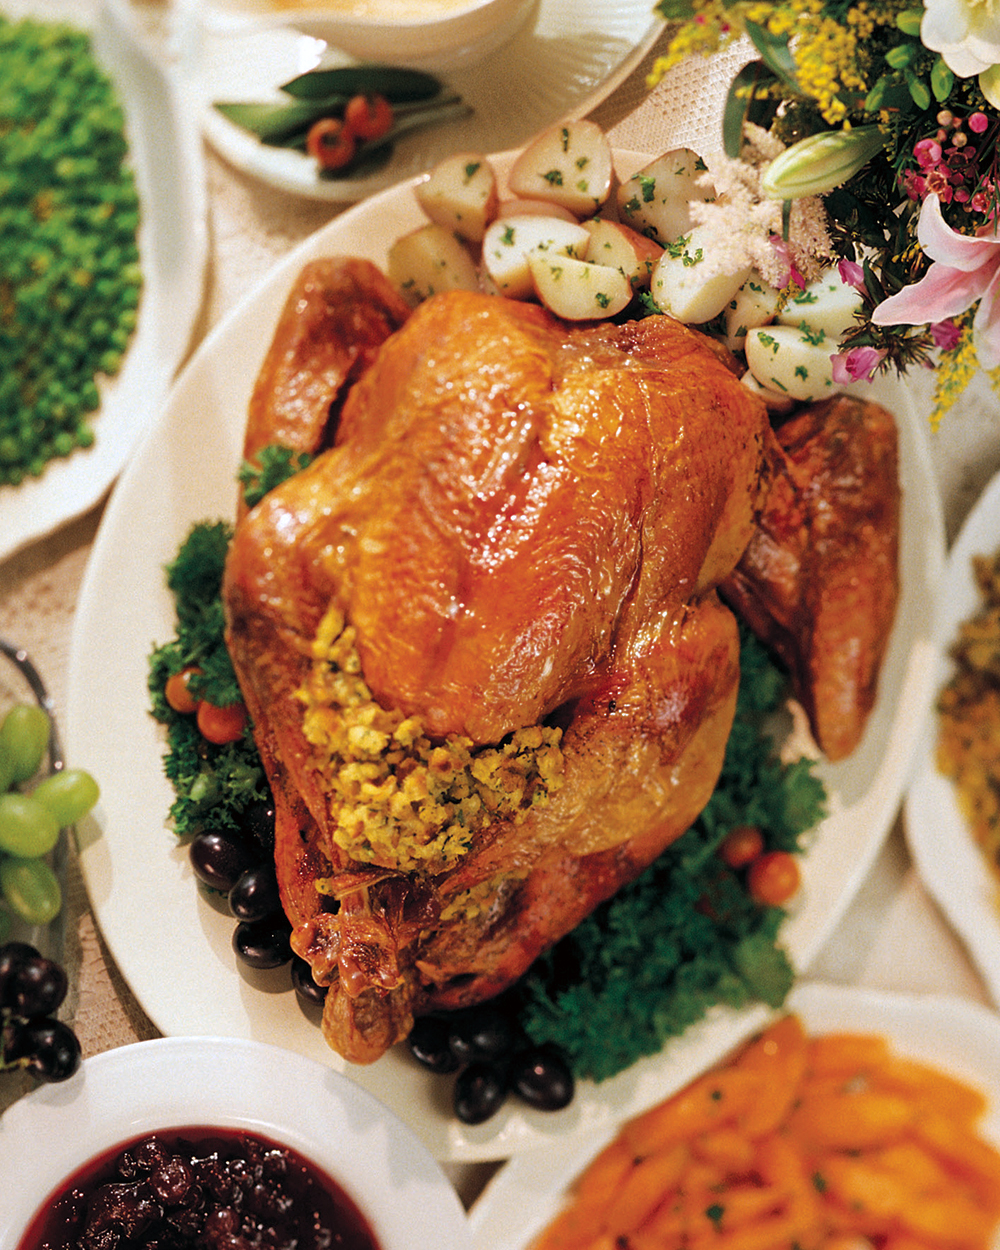 What to do with all that turkey, stuffing and cranberry sauce?